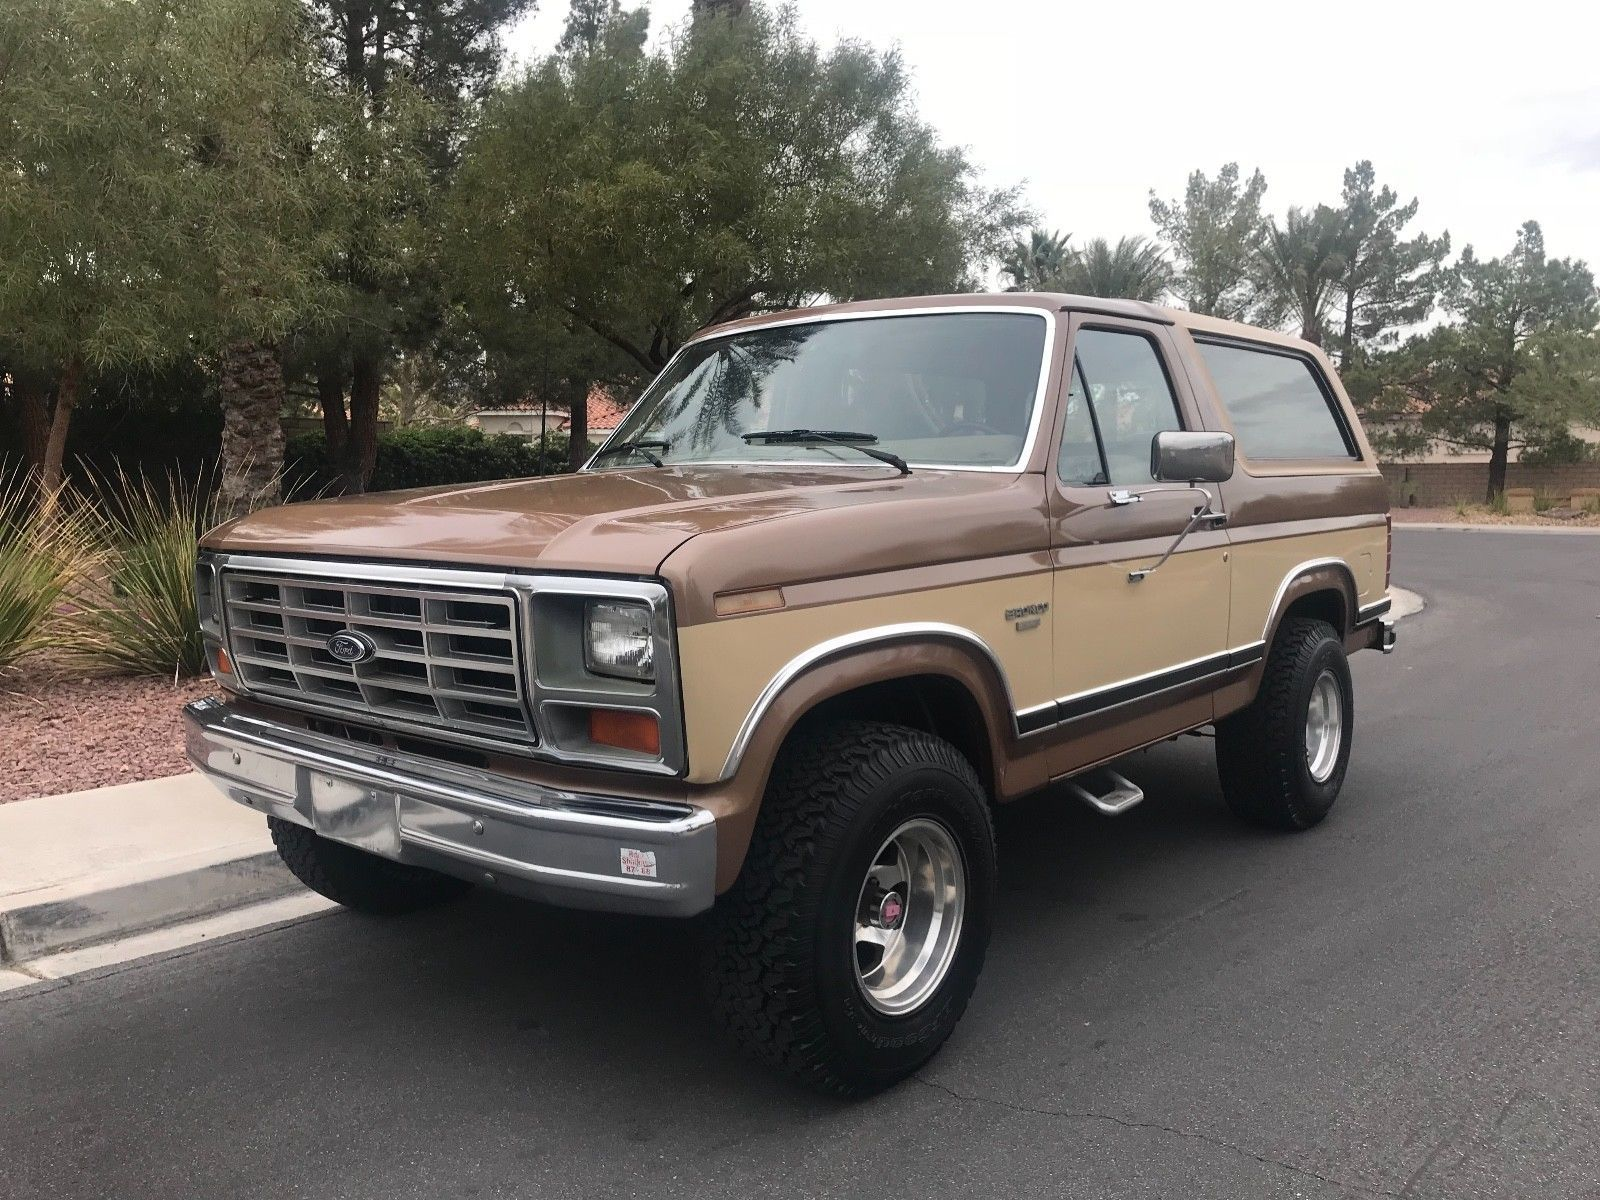 Ebay 1985 ford bronco xlt 1985 classic ford bronco 4x4 with low miles all original west coast truck classiccars cars